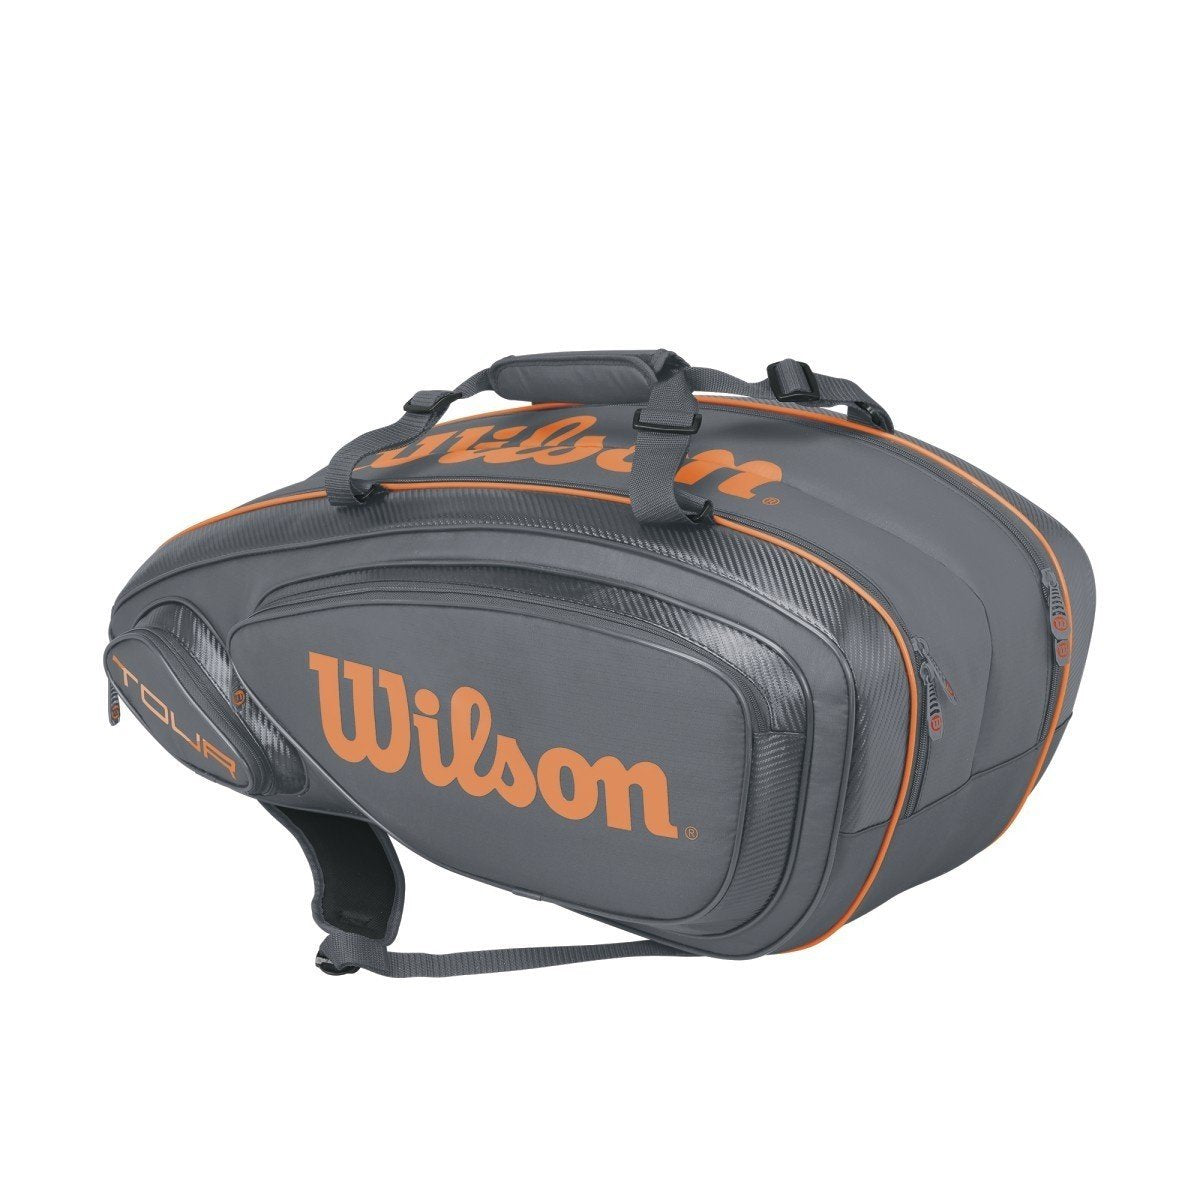 Wilson - 2018 Tour V 9 Pack-Tennis Accessories-Kunstadt Sports